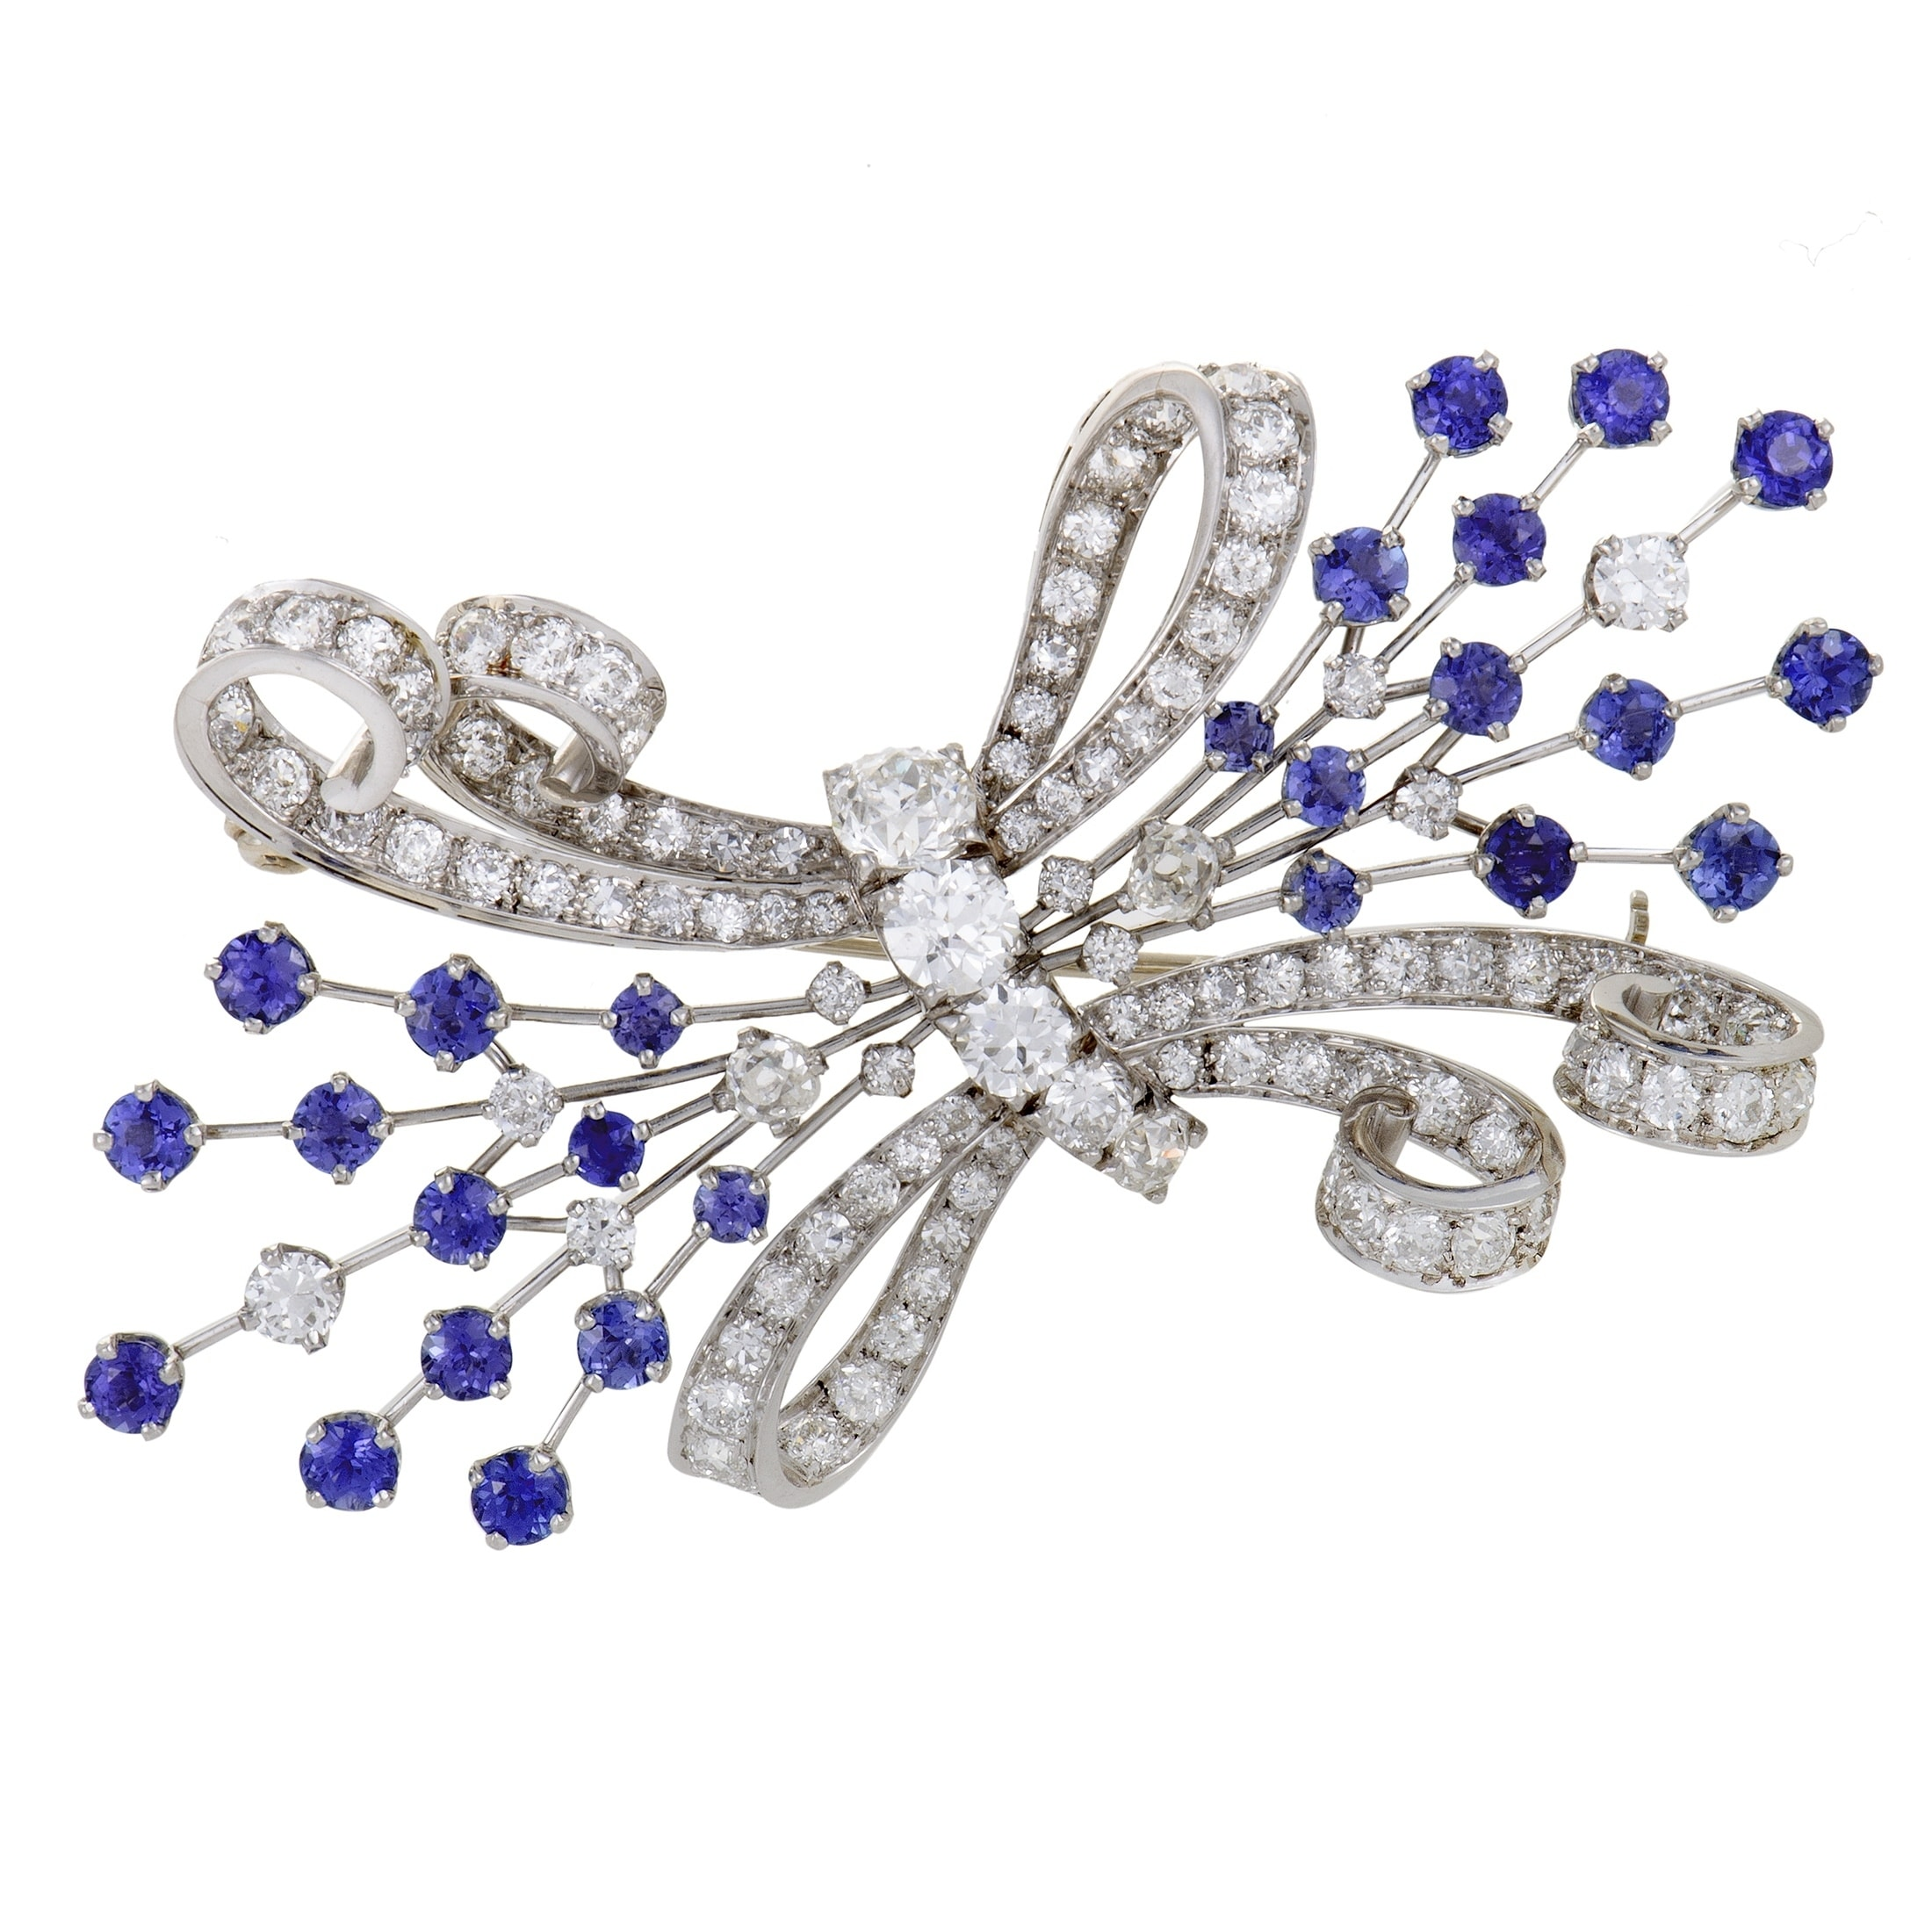 dea65a759d2 Shop Womens Platinum Full Diamond Pave and Sapphire Bow Brooch - Free  Shipping Today - Overstock - 20526210